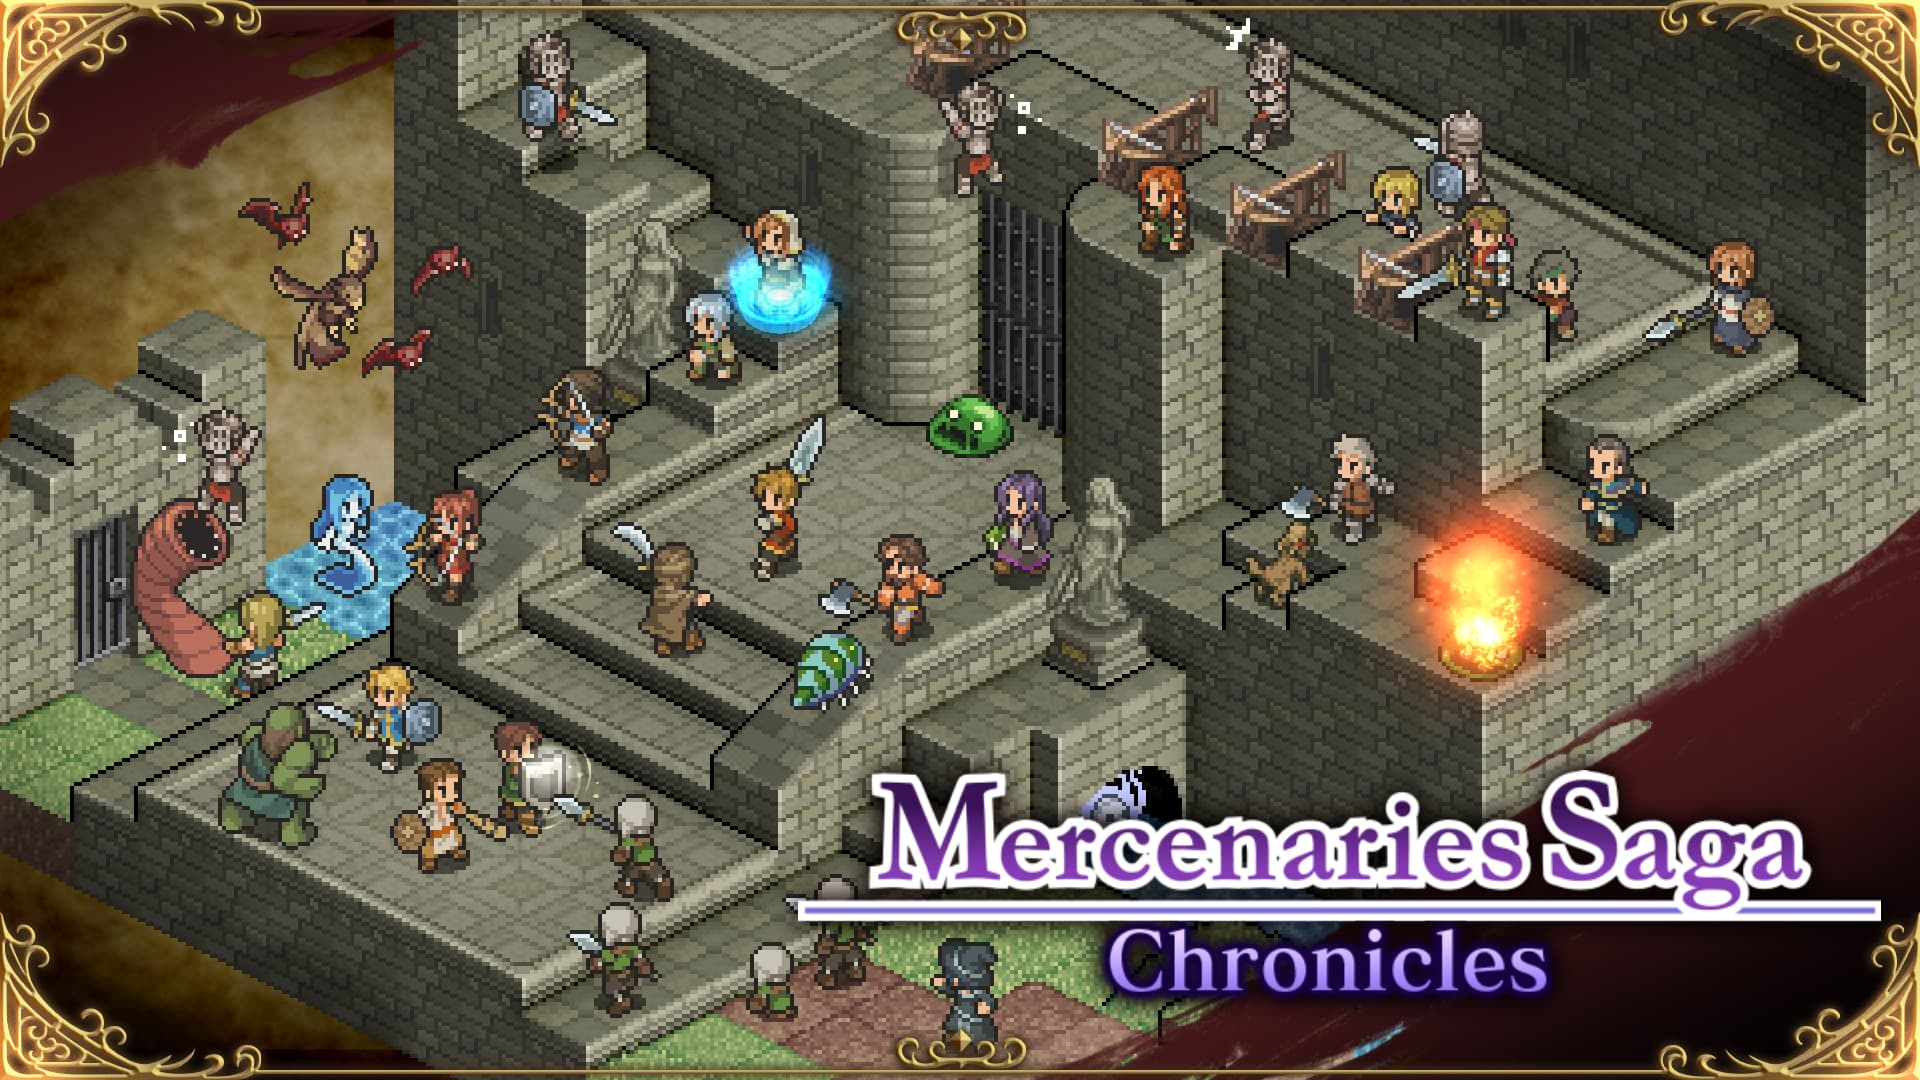 Mercenaries Saga Chronicles - Nintendo Switch Digital Download - $7.49 @ Nintendo Game Store